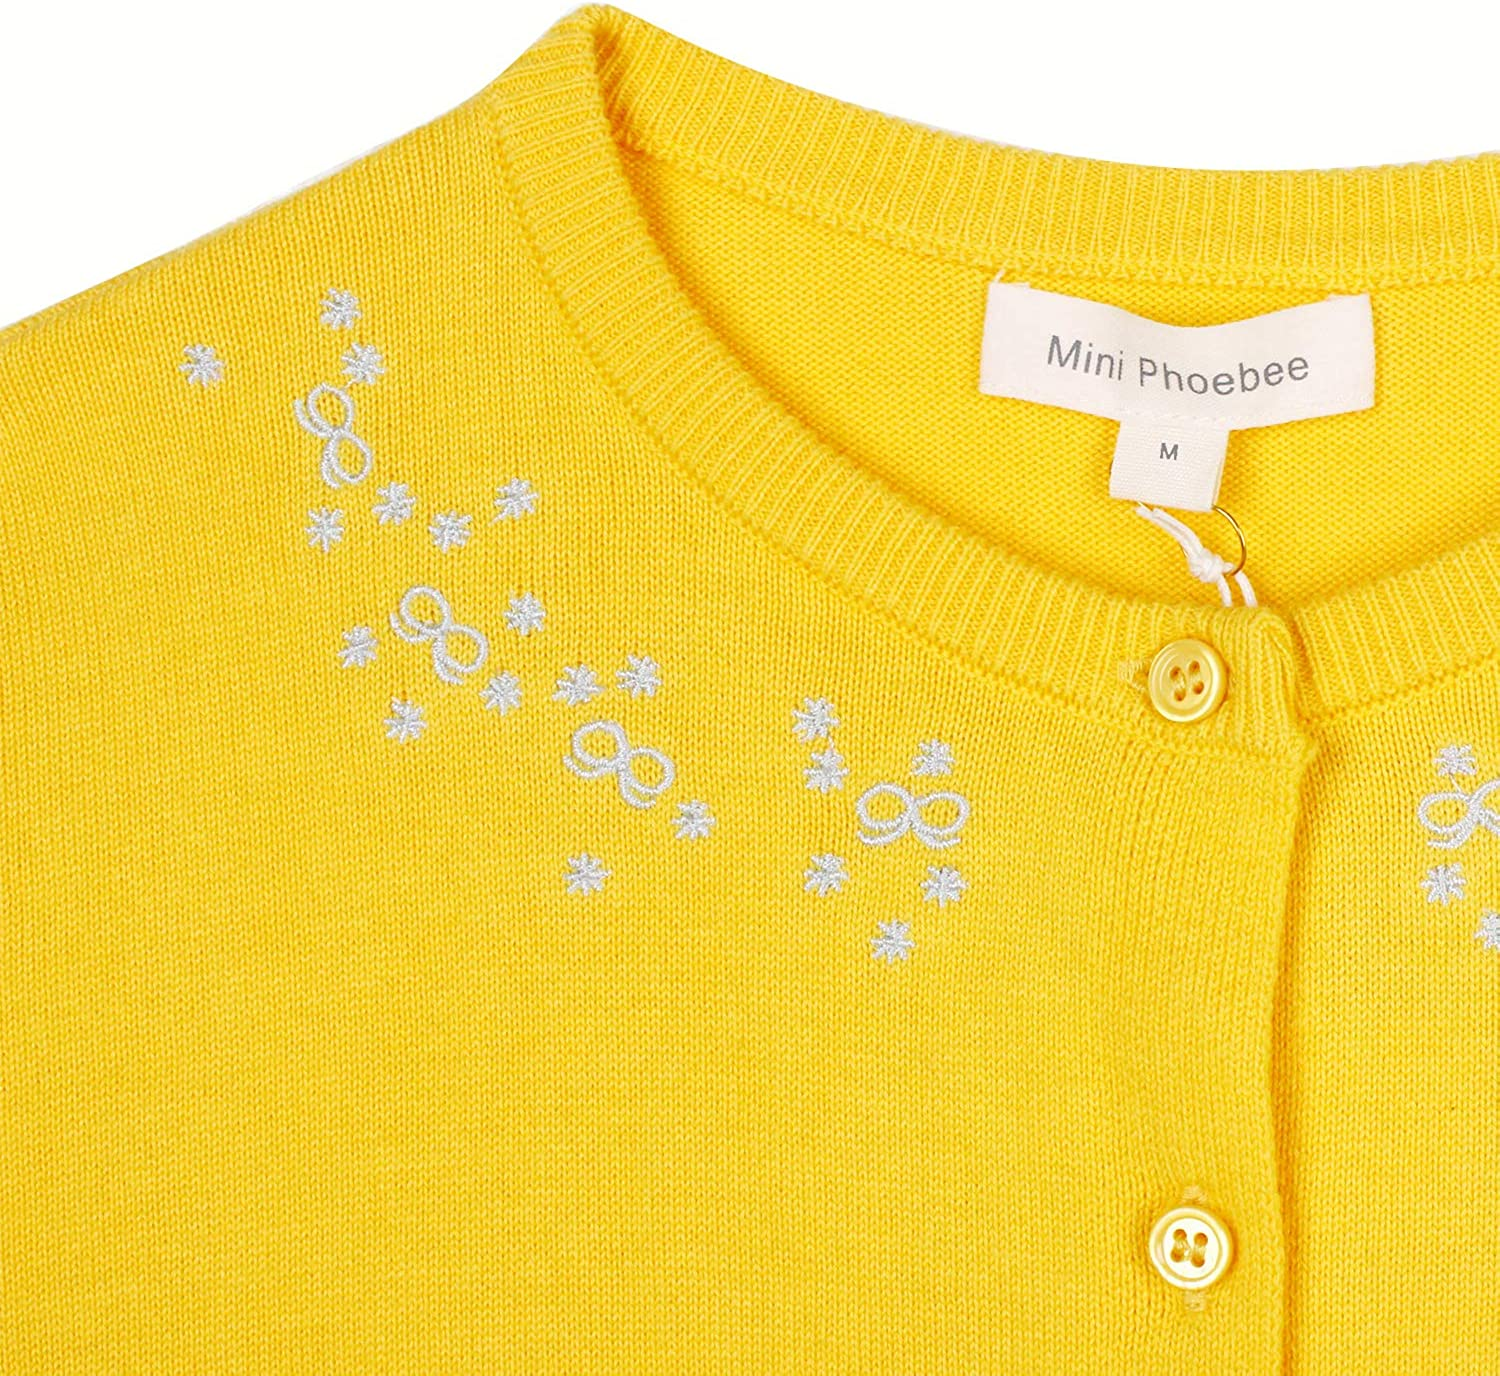 Mini Phoebee Girls Long Sleeve Button Cardigan Sweater Floral Embroidery Pattern Knit Top